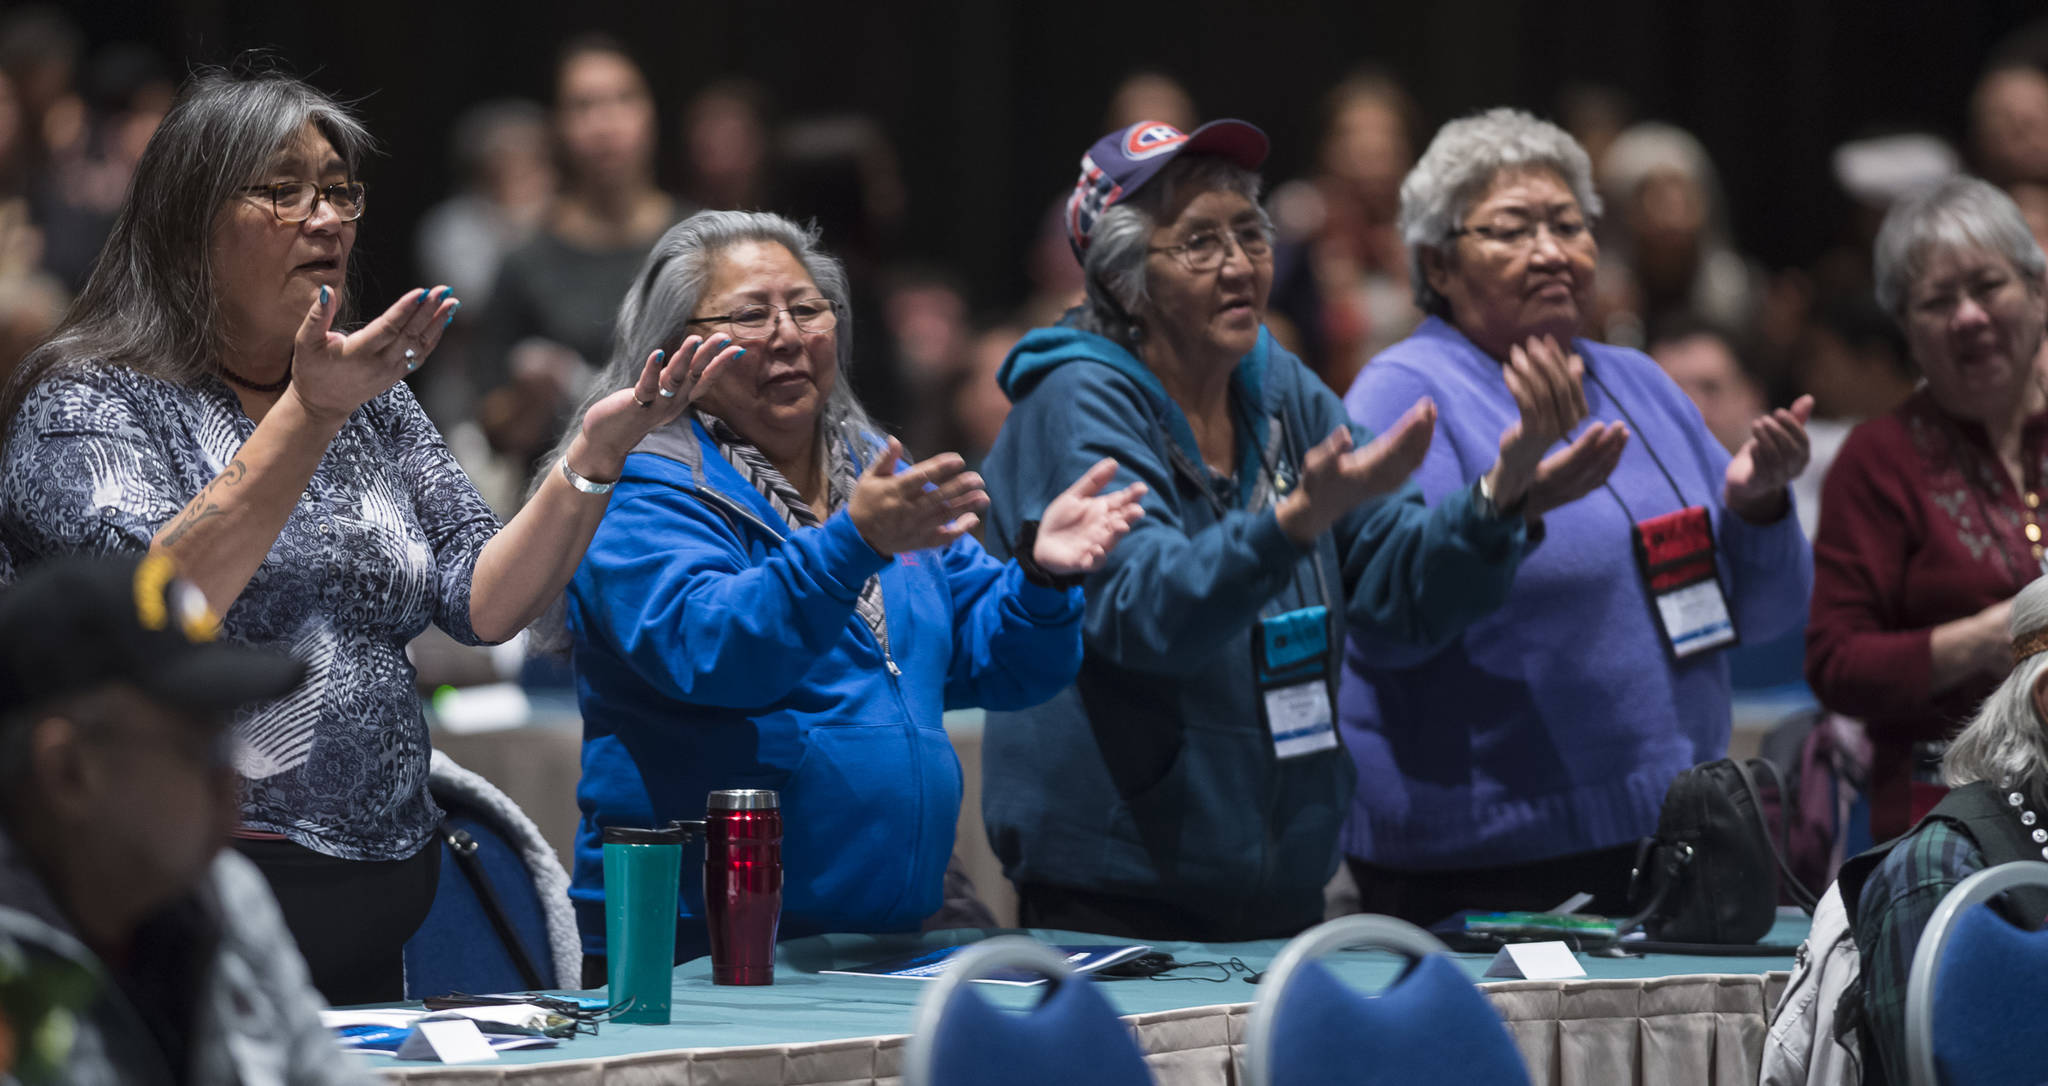 Women dance with the Tlingit Culture Language and Literacy Dance Group from Harborview Elementary School during the Voices of Our Ancestors Language Summit at Centennial Hall on Tuesday, Nov. 13, 2018. (Michael Penn | Juneau Empire)